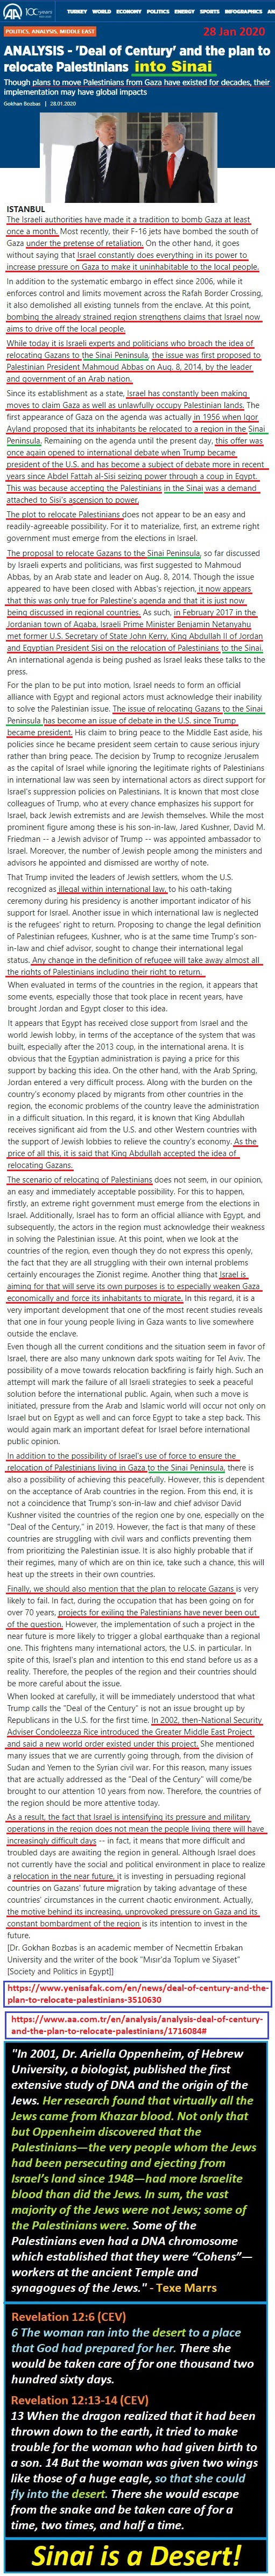 https://www.aa.com.tr/en/analysis/analysis-deal-of-century-and-the-plan-to-relocate-palestinians/1716084#